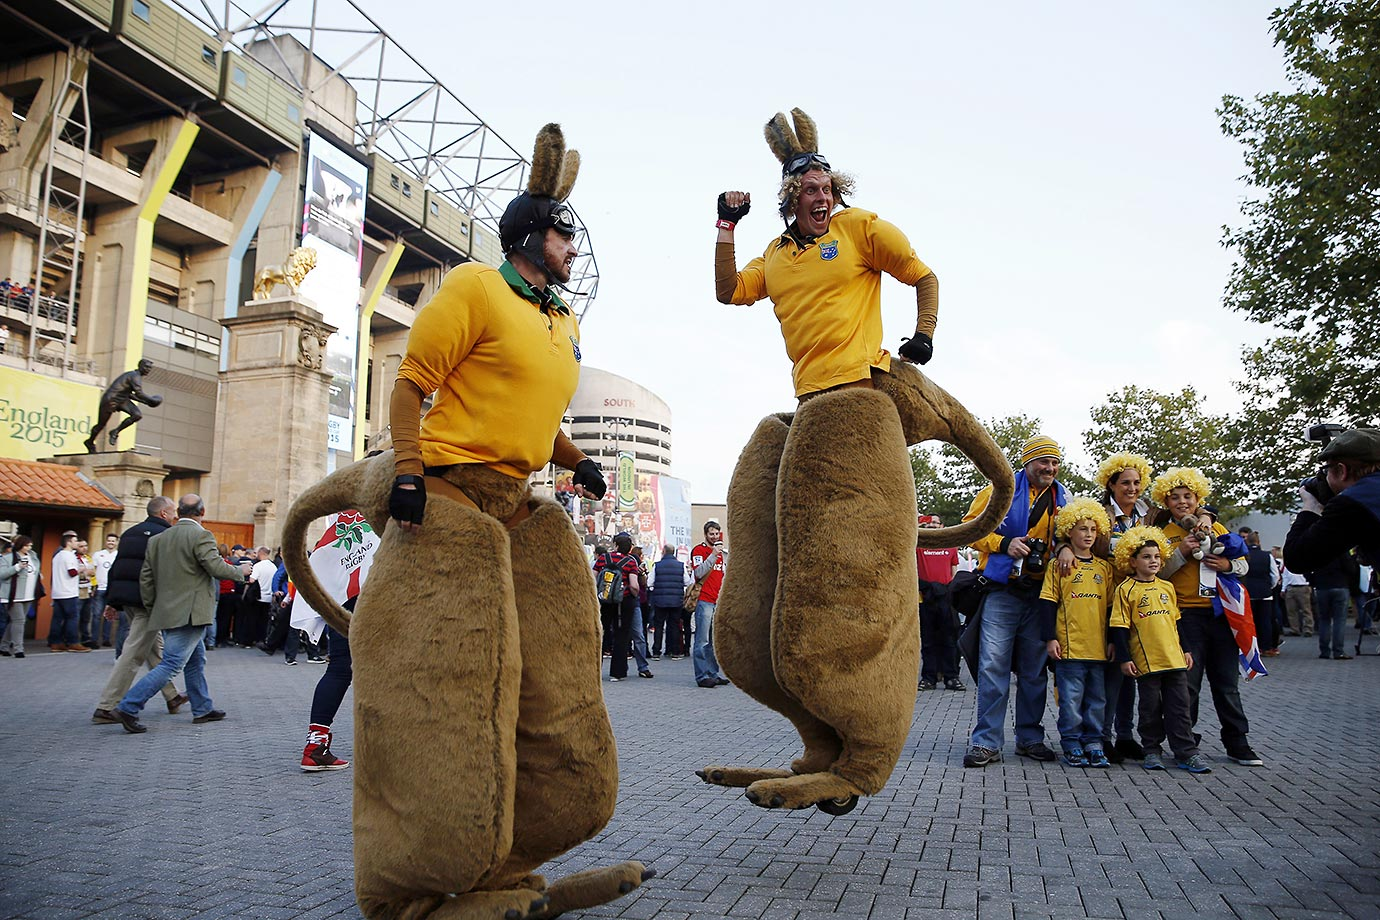 Entertainers dressed as wallabies perform outside Twickenham stadium before a Pool A match of the 2015 Rugby World Cup between England and Australia.